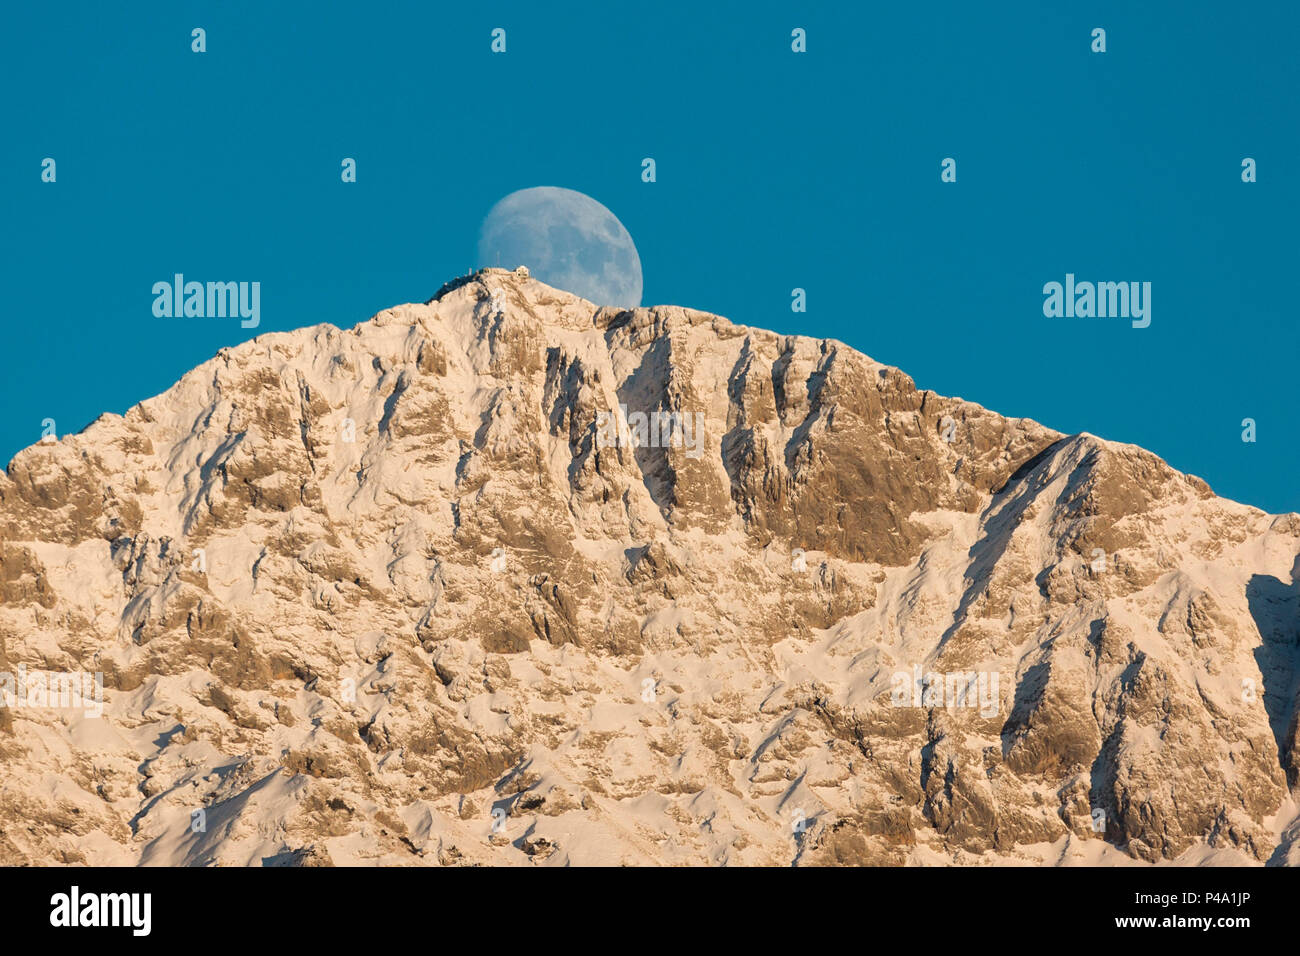 Full Moon rising behind the summit of Grigna Settentrionale and its refuge Rifugio Brioschi, province of lecco, lombardy, italy - Stock Image